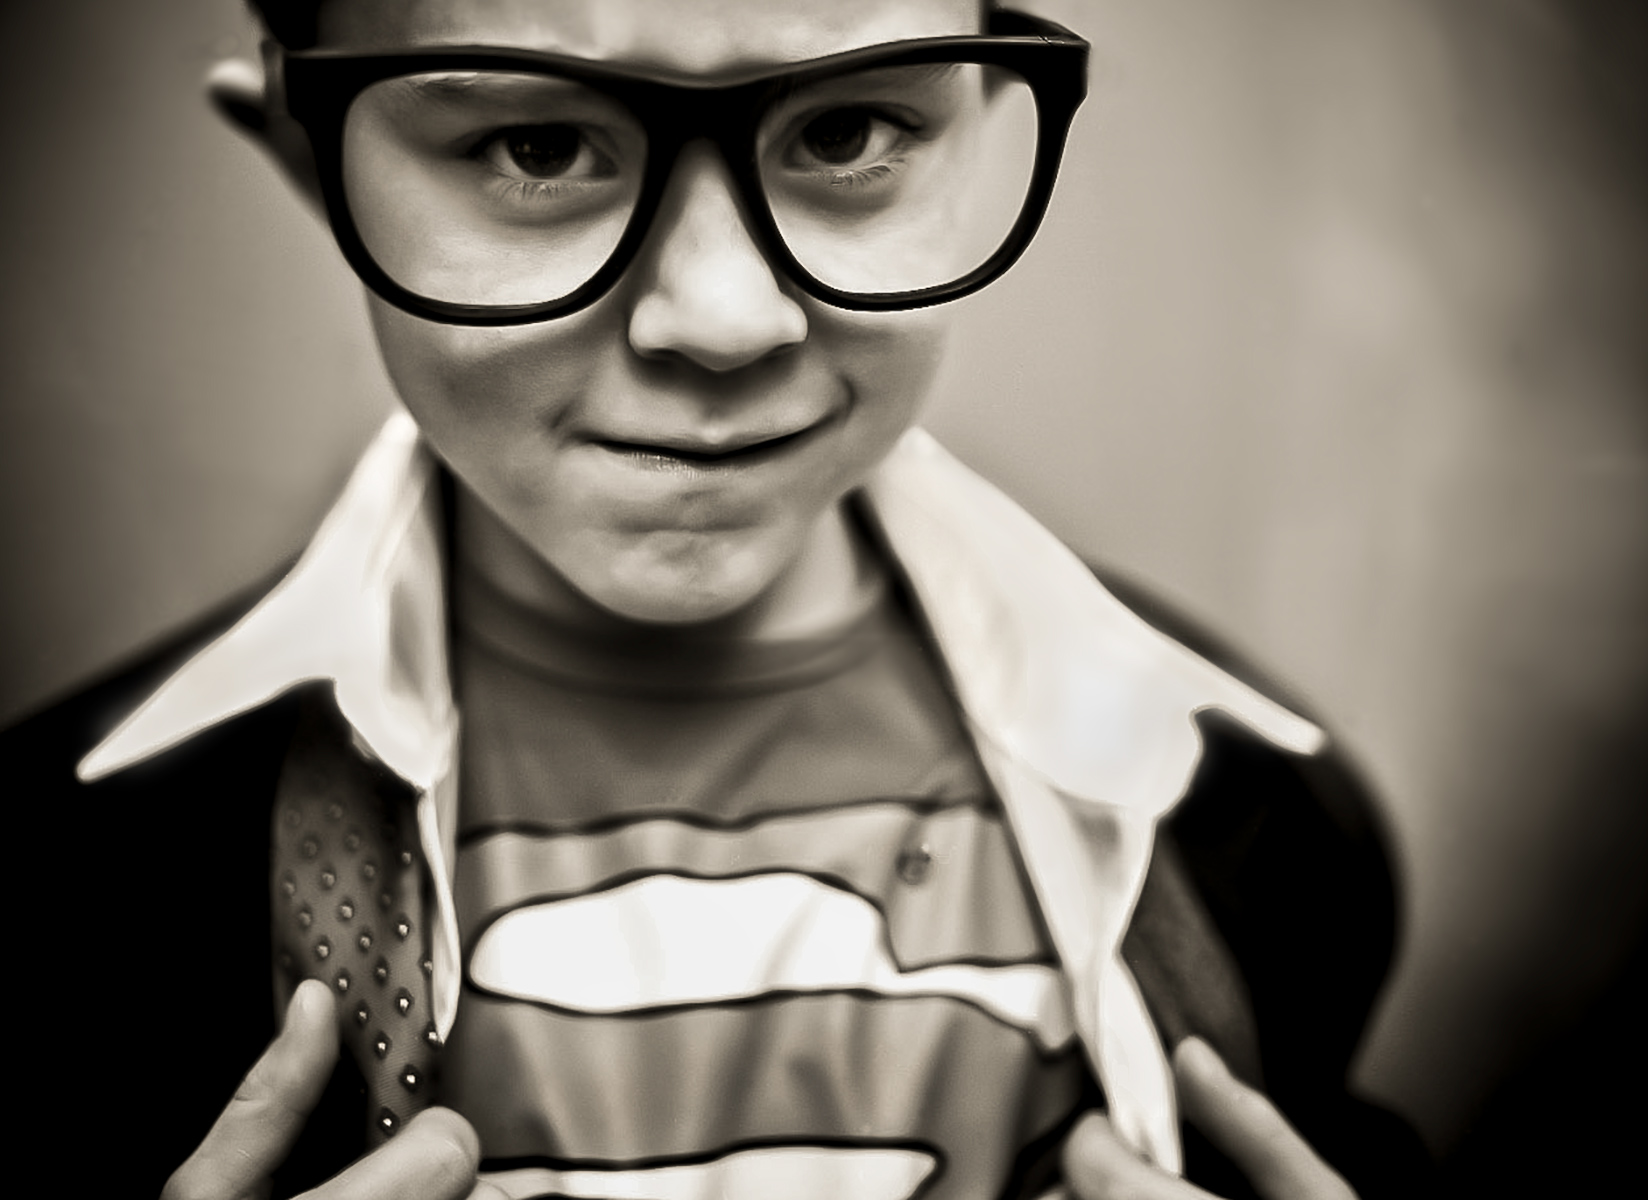 Superman-kid034-F-Edit-Edit-Edit